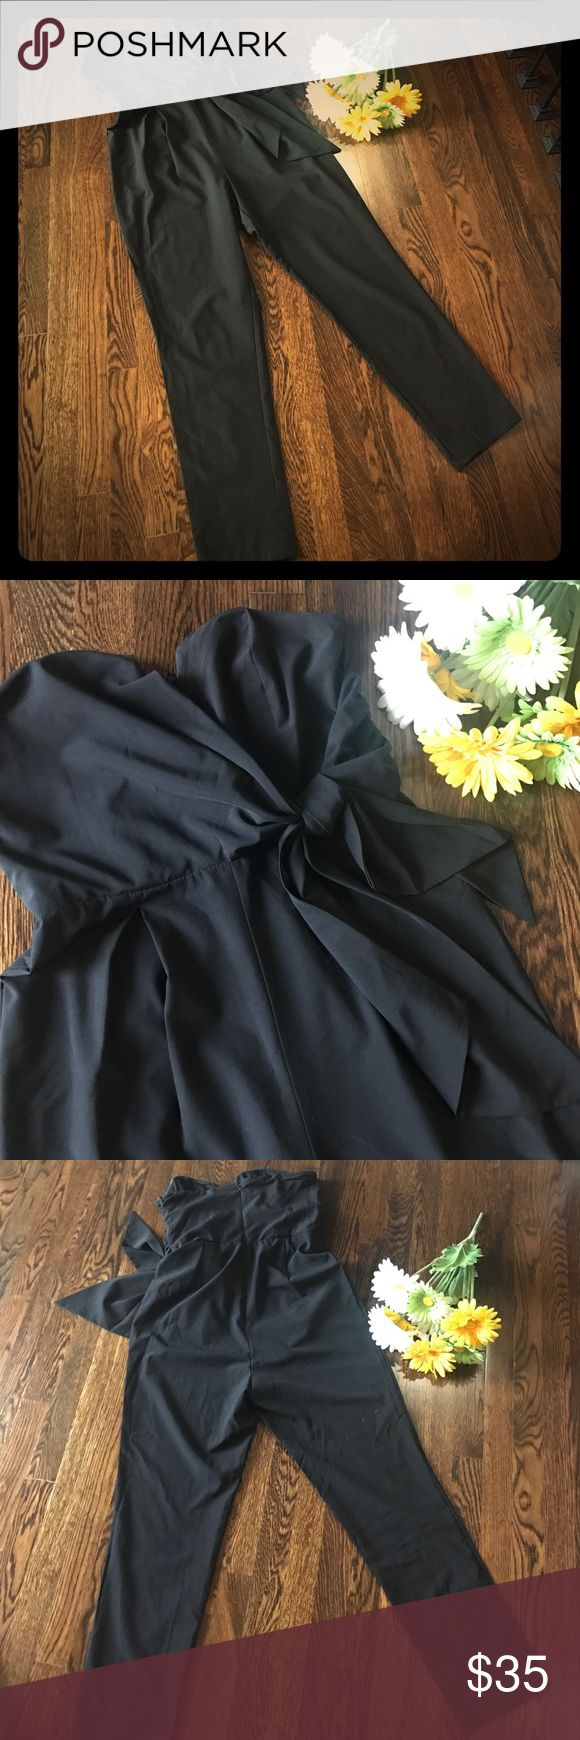 Black Strapless Jumpsuit, Sz M Black strapless jumpsuit with sweetheart neckline and embellished side tie. Pleated to flatter. Brand is Mustard Seed. Lined and boned for support. Fabric has a little stretch. Great with heels for an evening wedding. Mustard Seed Pants Jumpsuits & Rompers